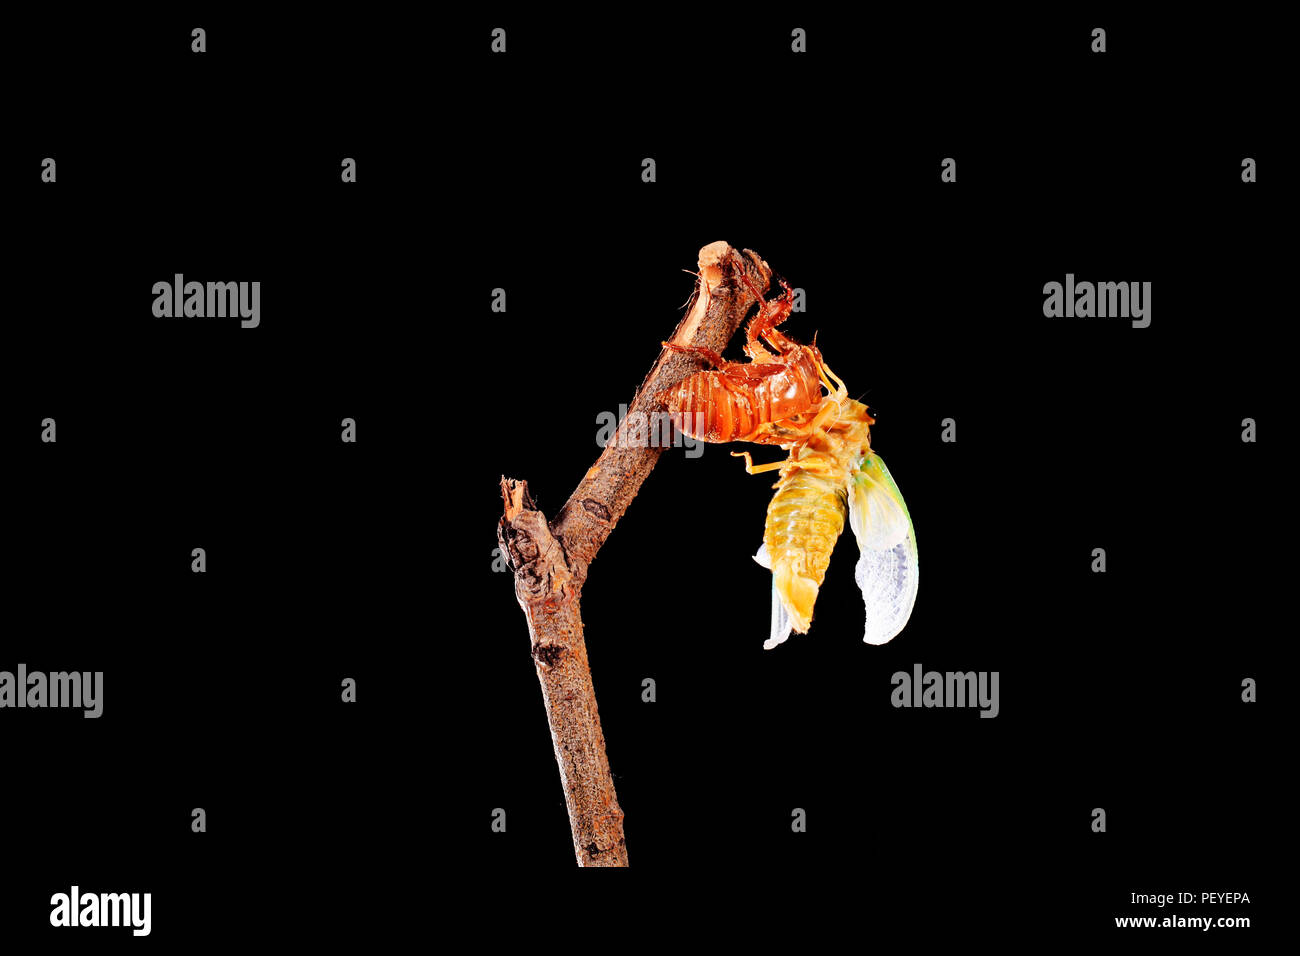 A cicada metamorphoses on a branch, A cicada is molting on a branch,black background - Stock Image